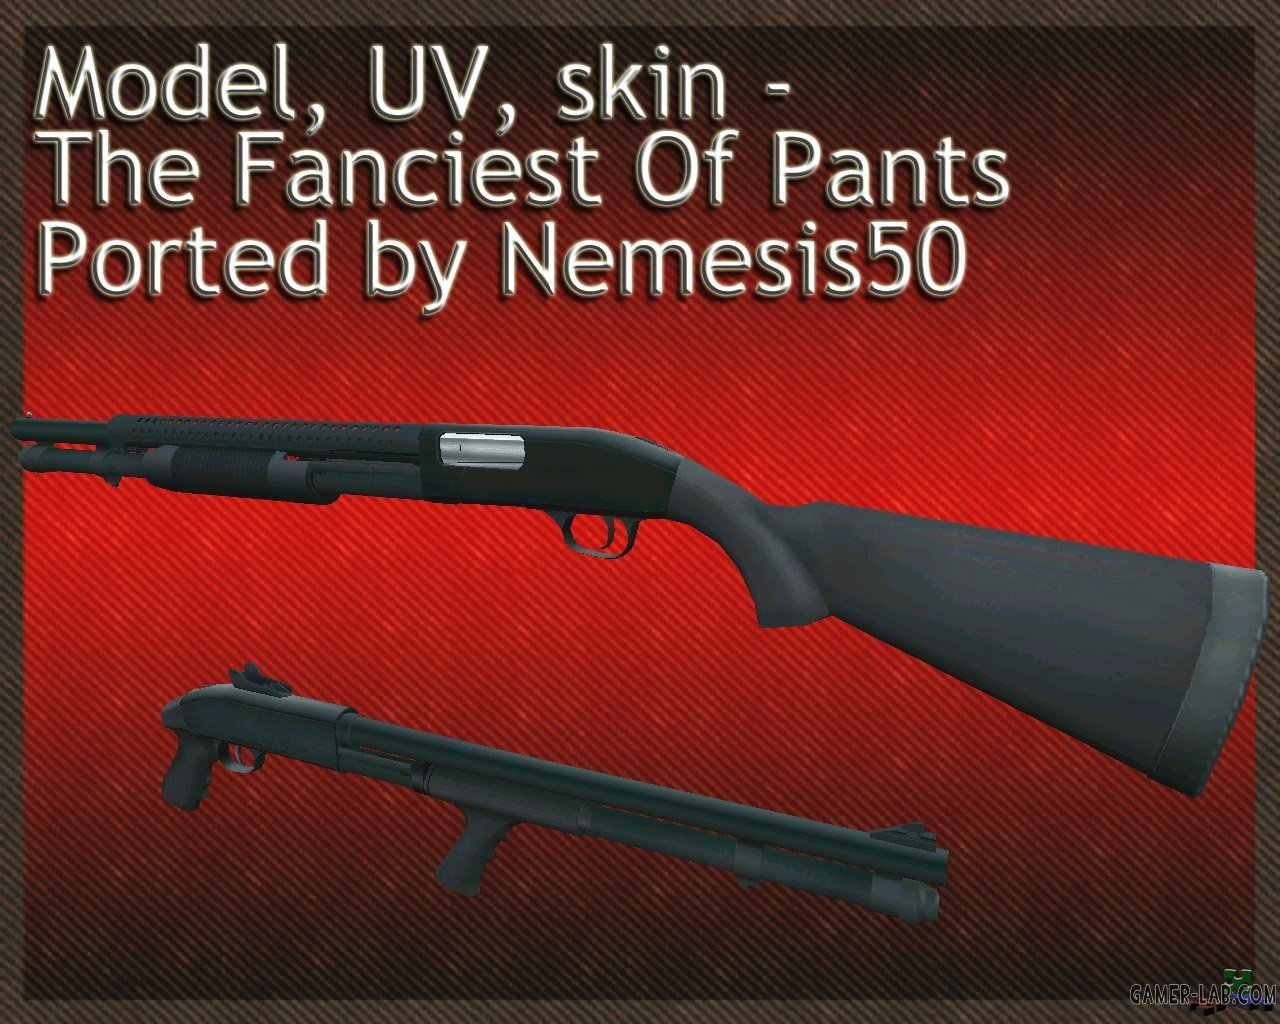 The Fanciest Of Pants Mossberg M590A1